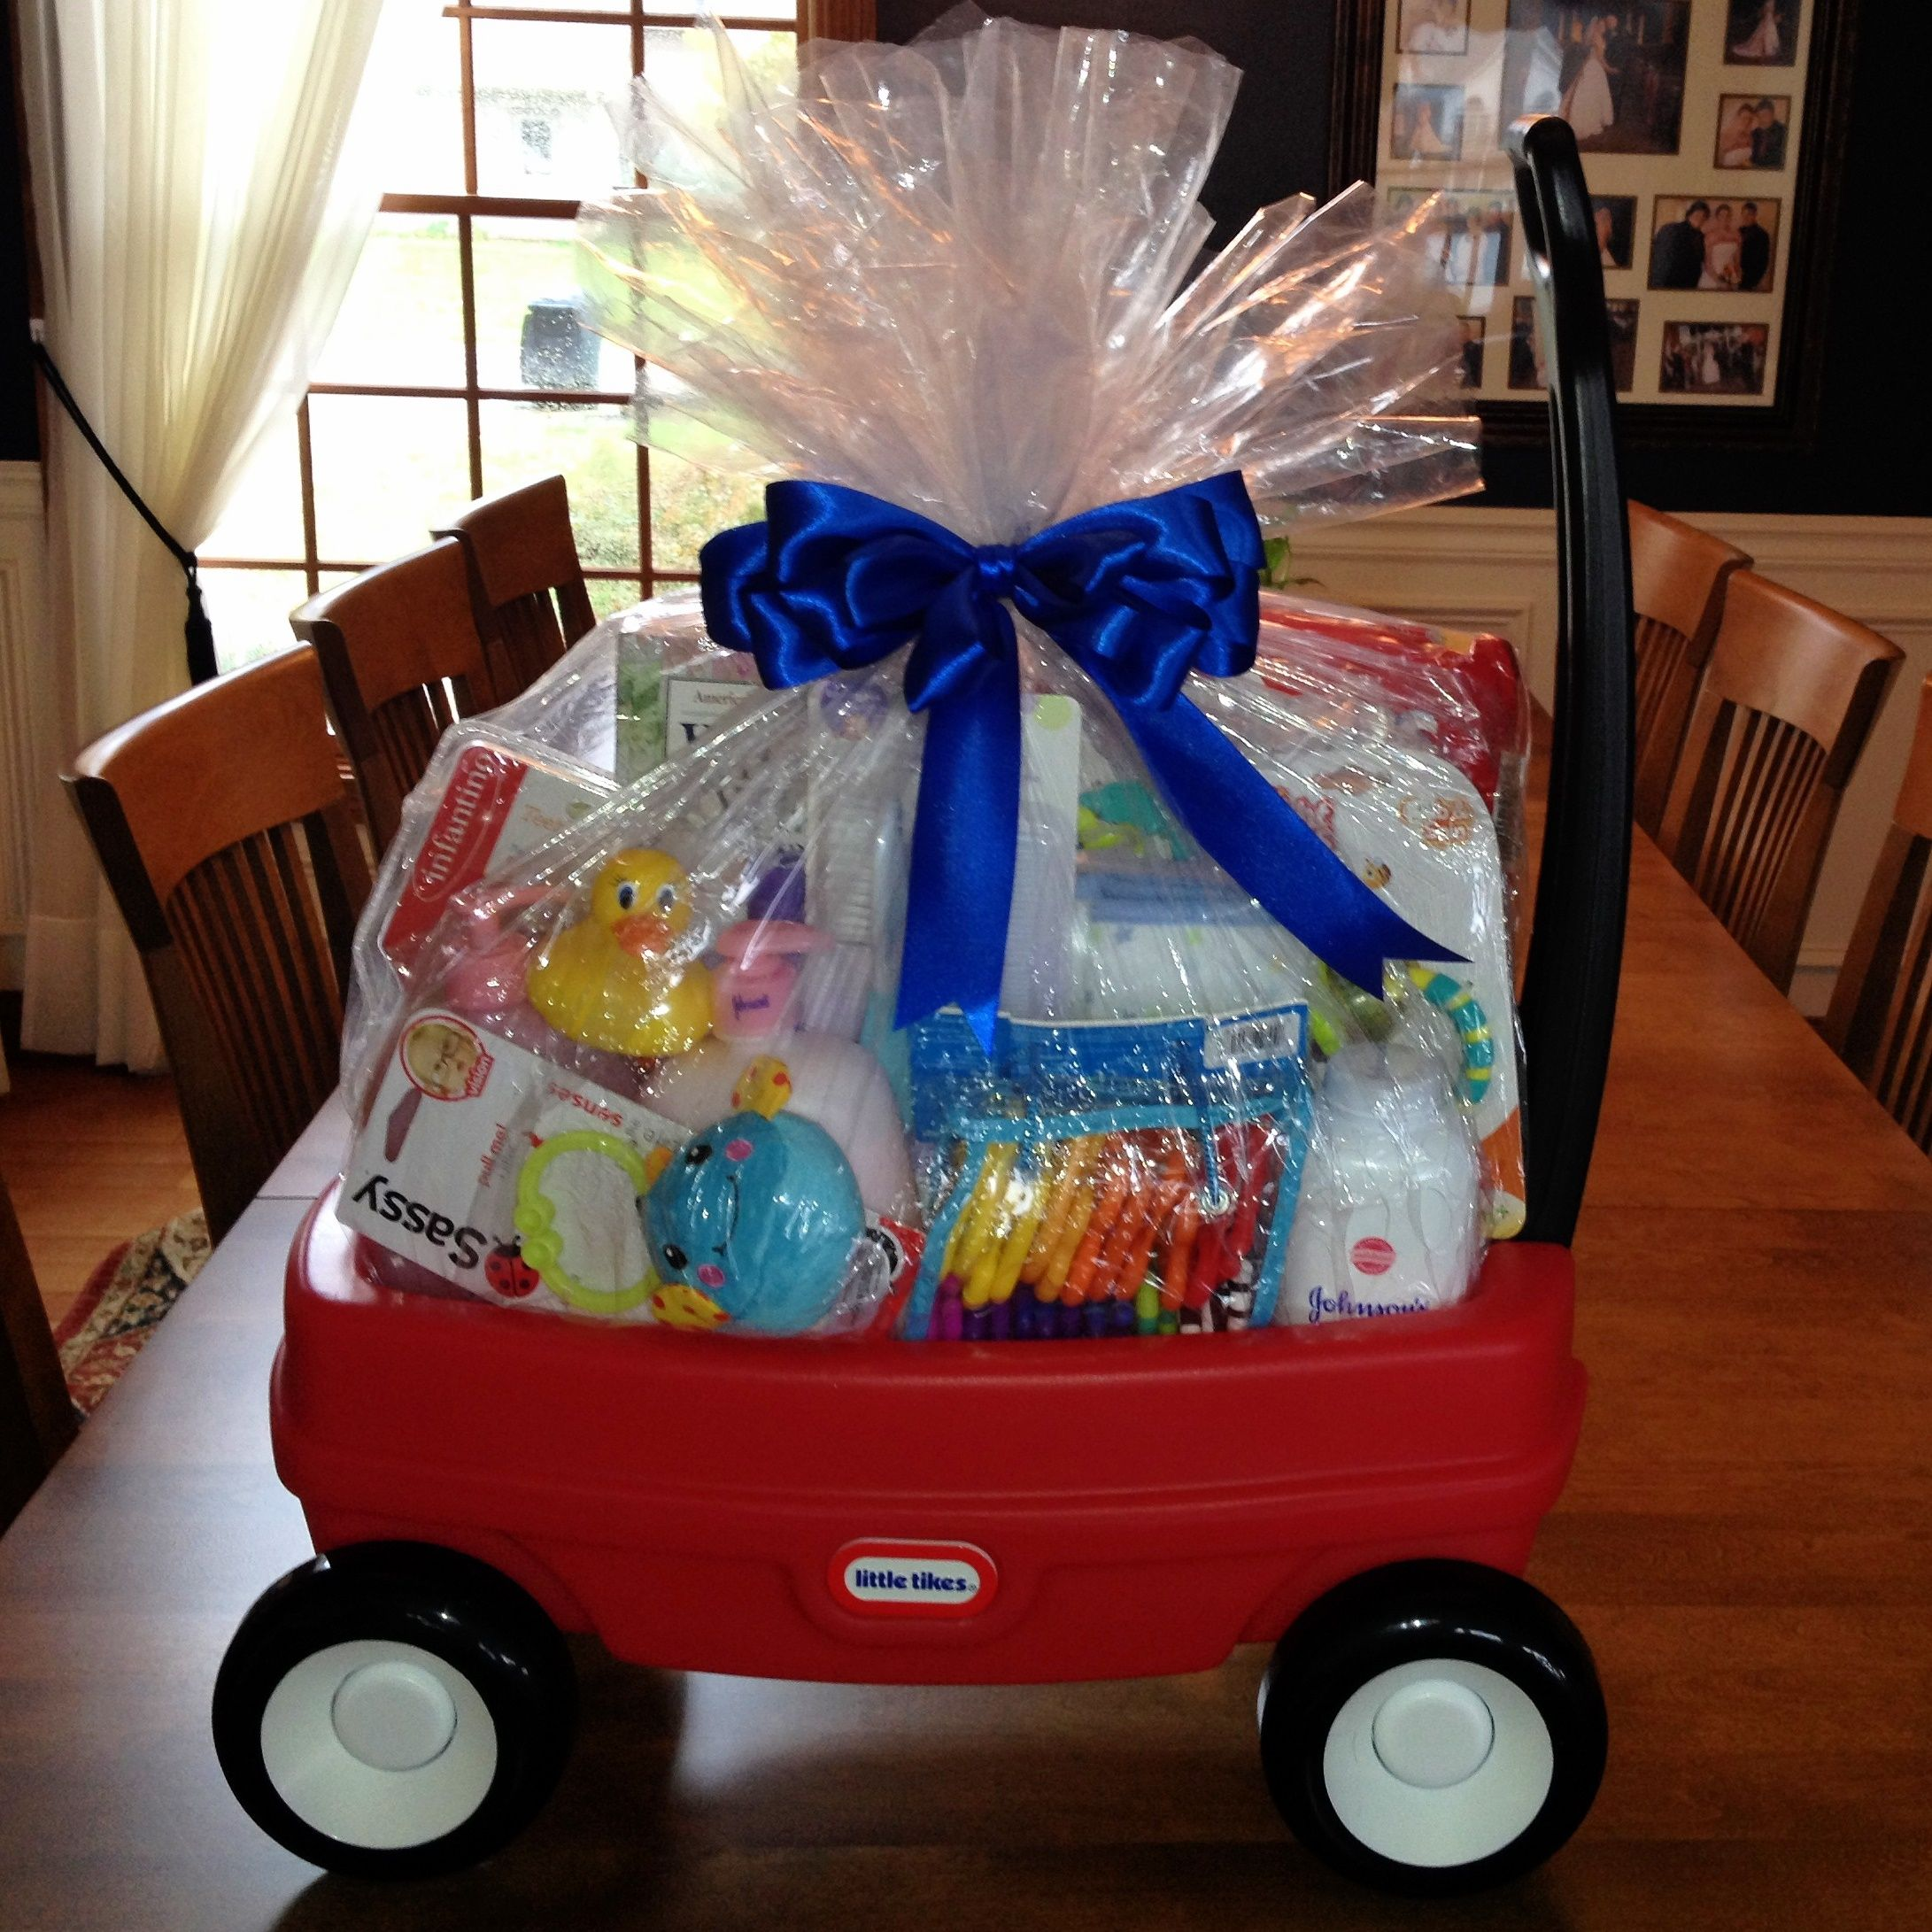 Gifts Baby Shower Kids My New Go To Baby Shower Present Basic Items From The Registry Wrapped Diy Baby Shower Gifts Baby Shower Baskets Baby Shower Presents